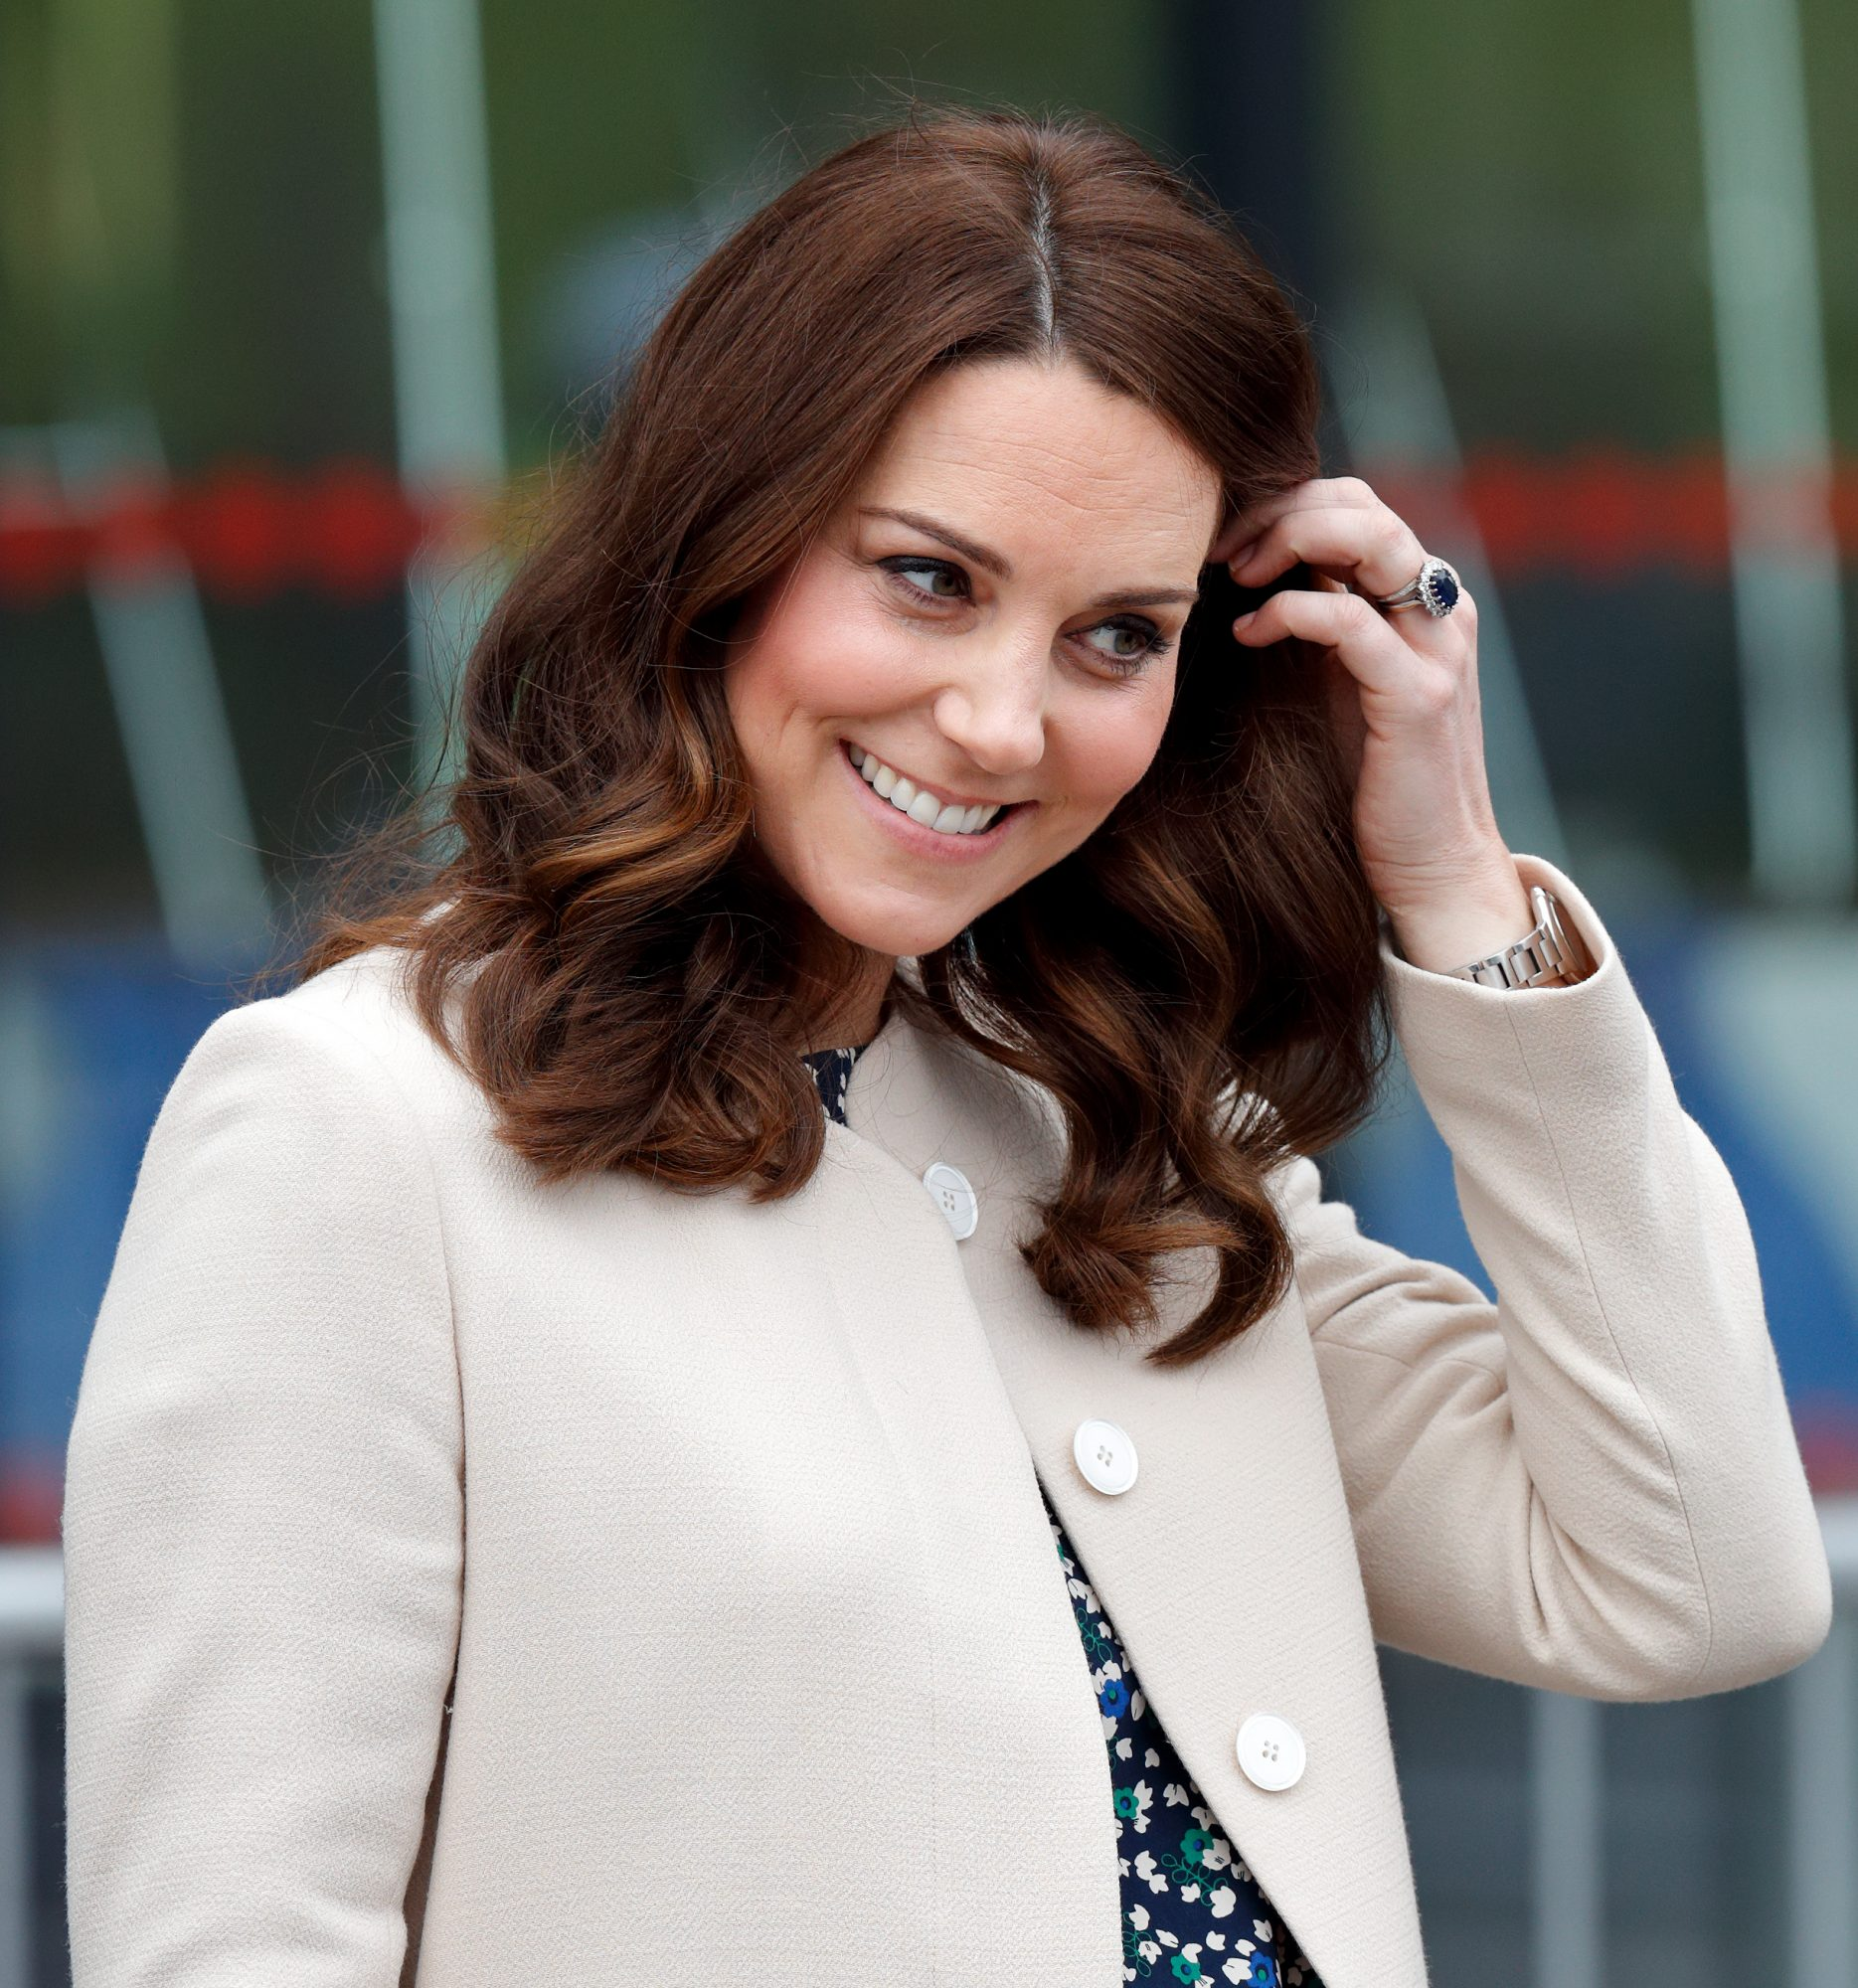 What Makes Kate Middleton's Engagement Ring So Controversial?